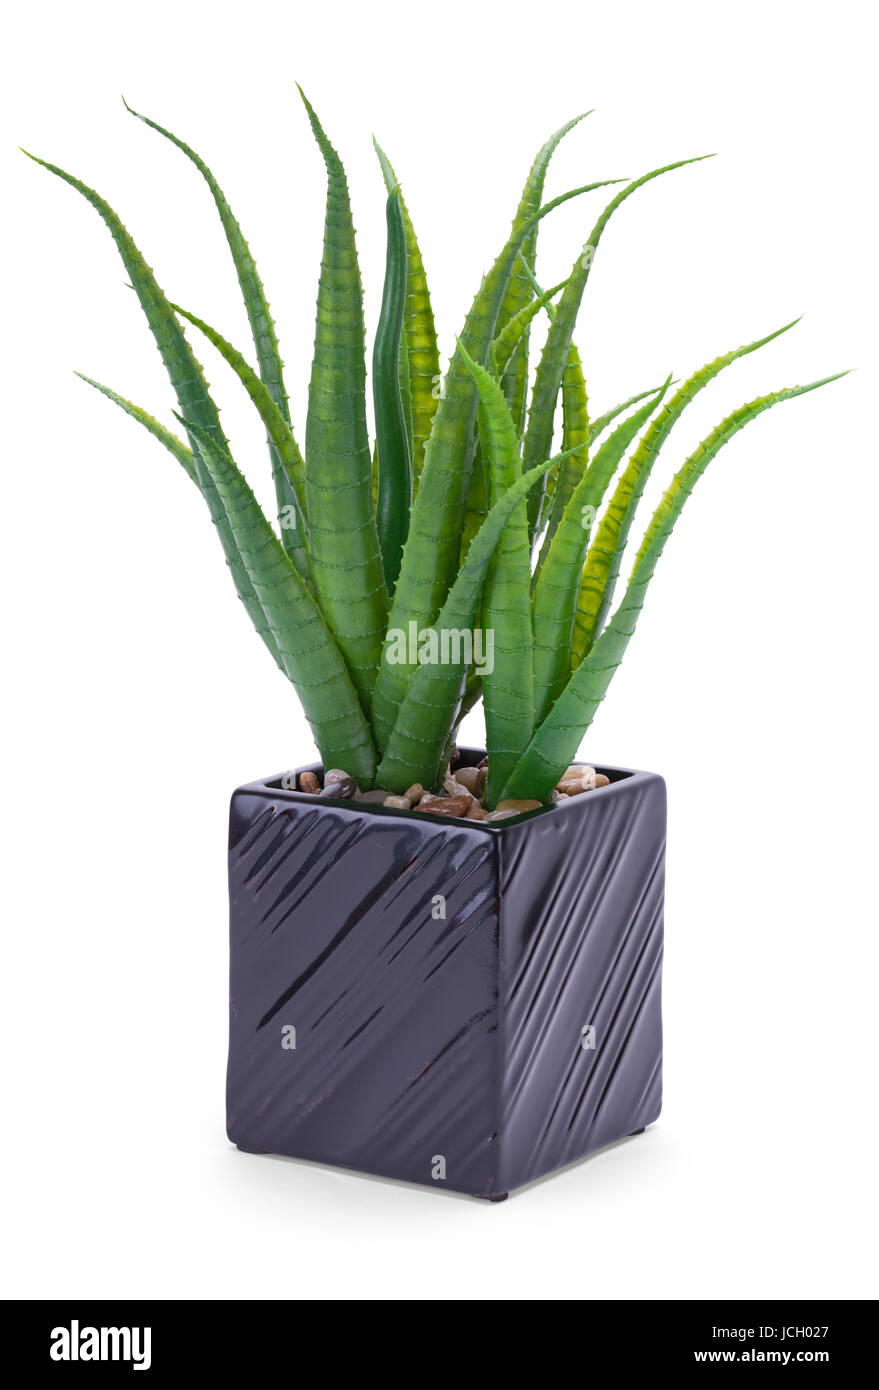 office flower pots. Office Plant In Black Pot Isolated On White Background. Flower Pots